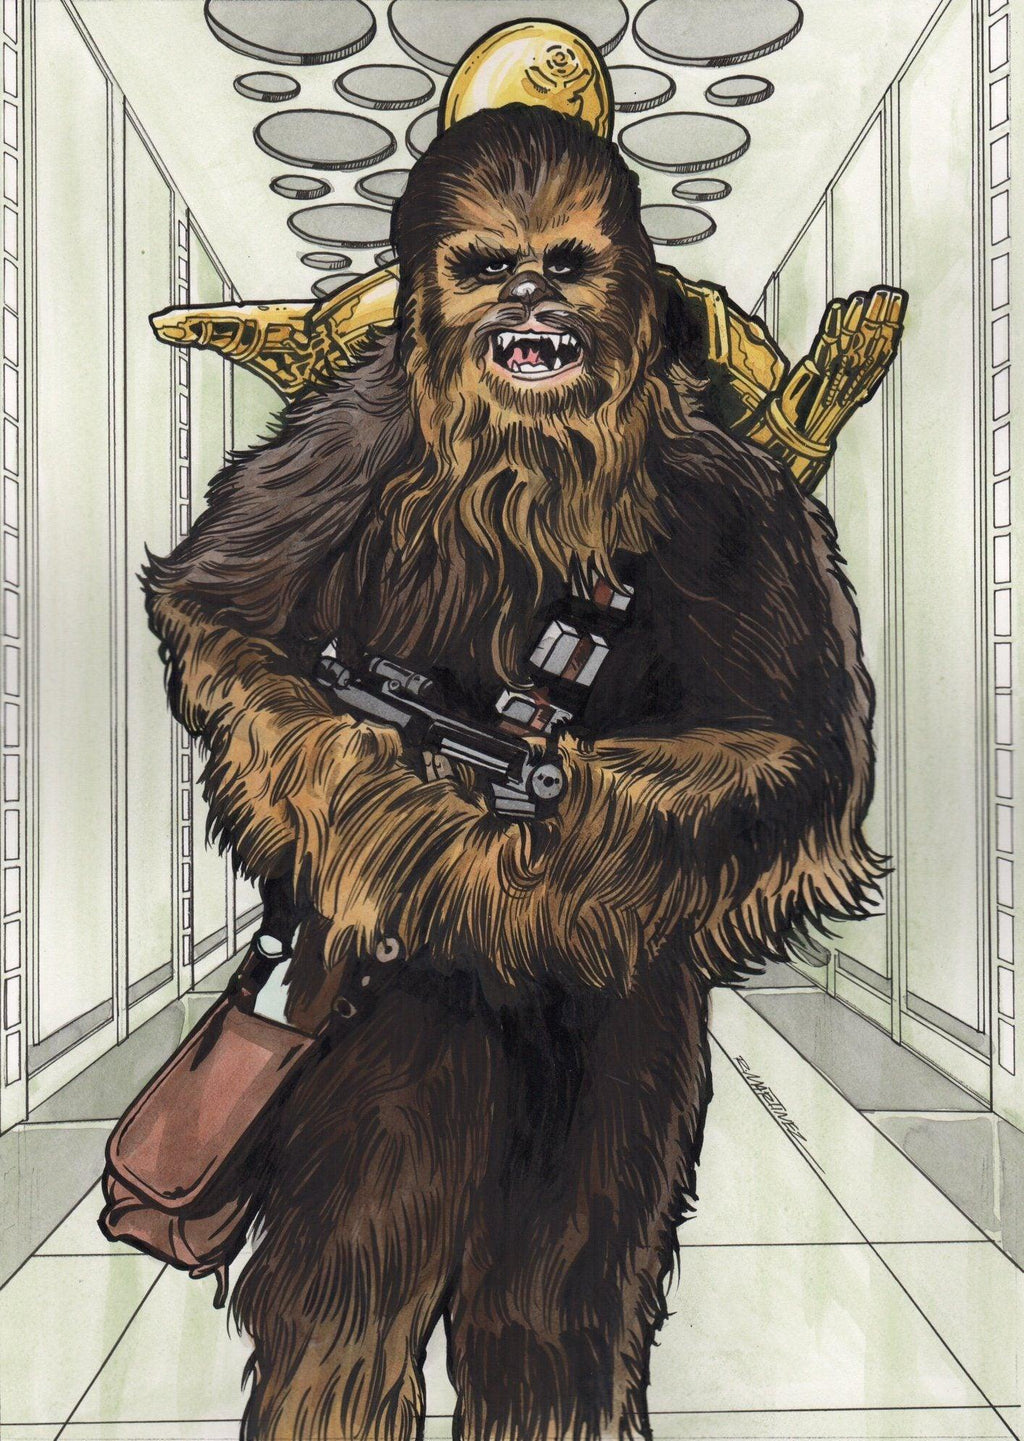 CHEWBACCA ORIGINAL ILLUSTRATION BY RANDY MARTINEZ Original Painting Randy Martinez